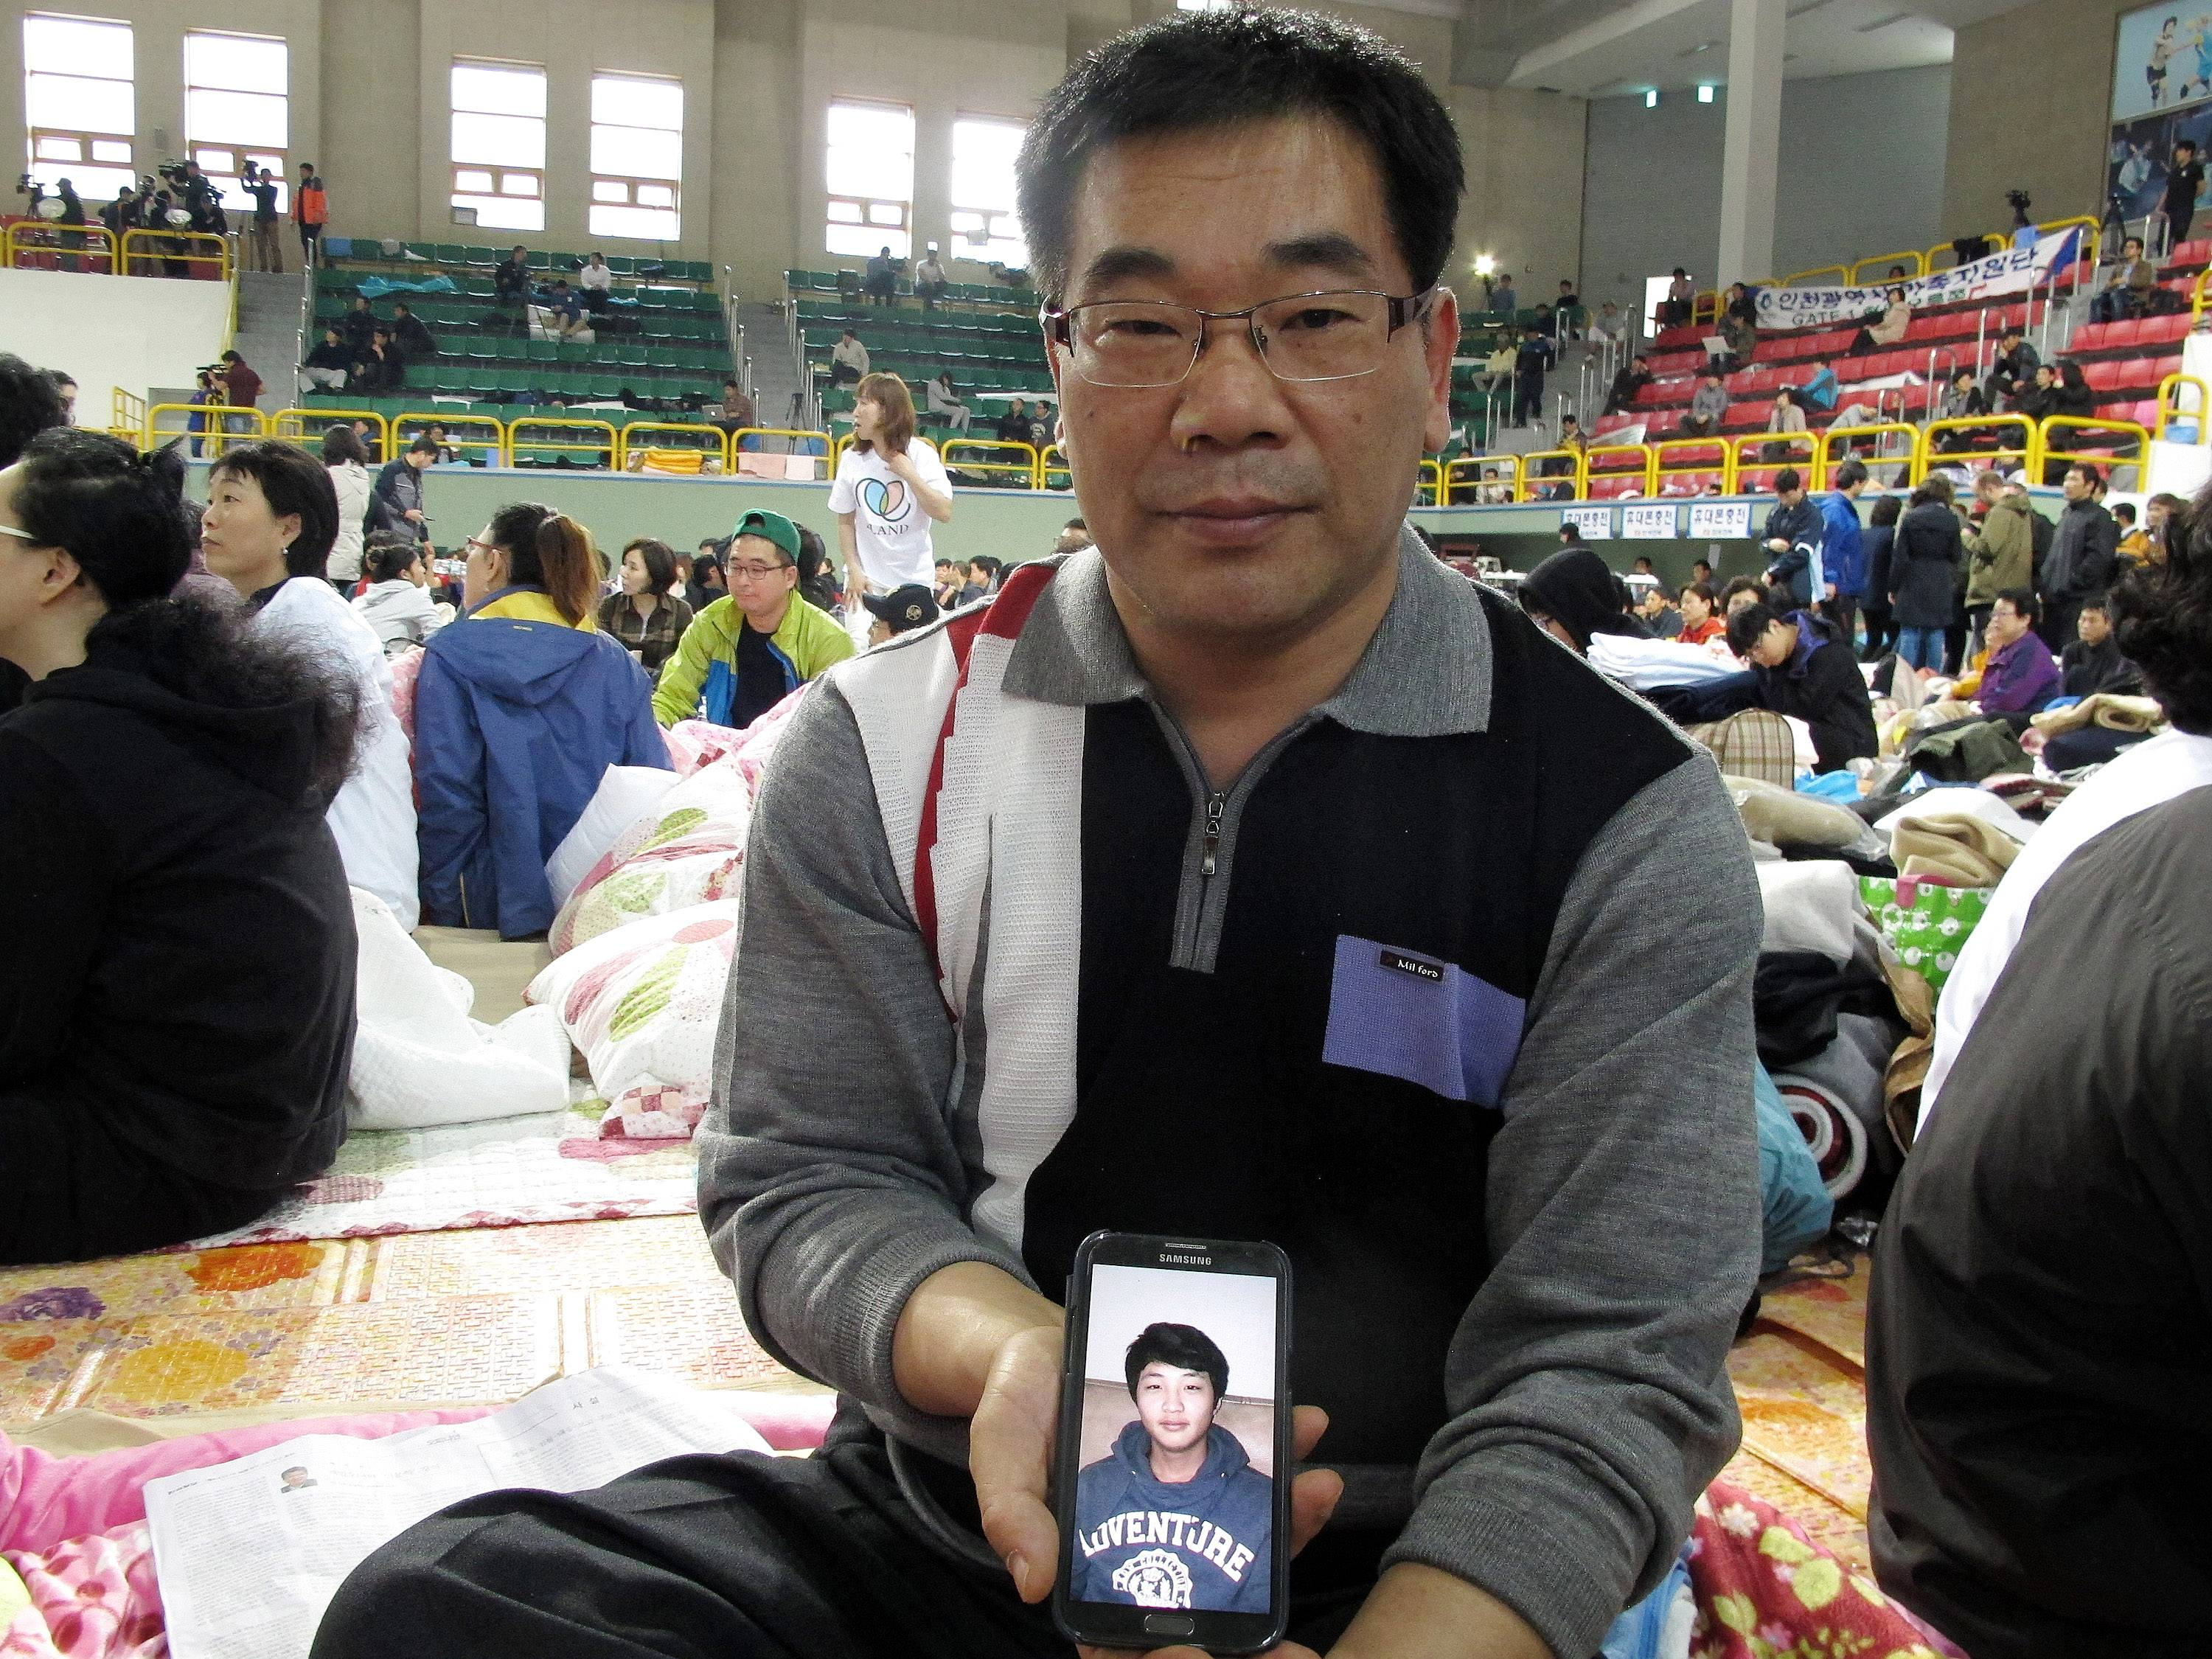 Lee Jong-eui shows a photograph of his nephew Nam Hyun-chul, one of missing passengers aboard the sunken ferry Sewol, during an interview at a gymnasium in Jindo, South Korea. Lee said 16-year-old Hyun-chul's parents poured their energy, love and attention into their only child. Though an overseas education is often pricey, his parents had sent him to school in New Zealand for a while.